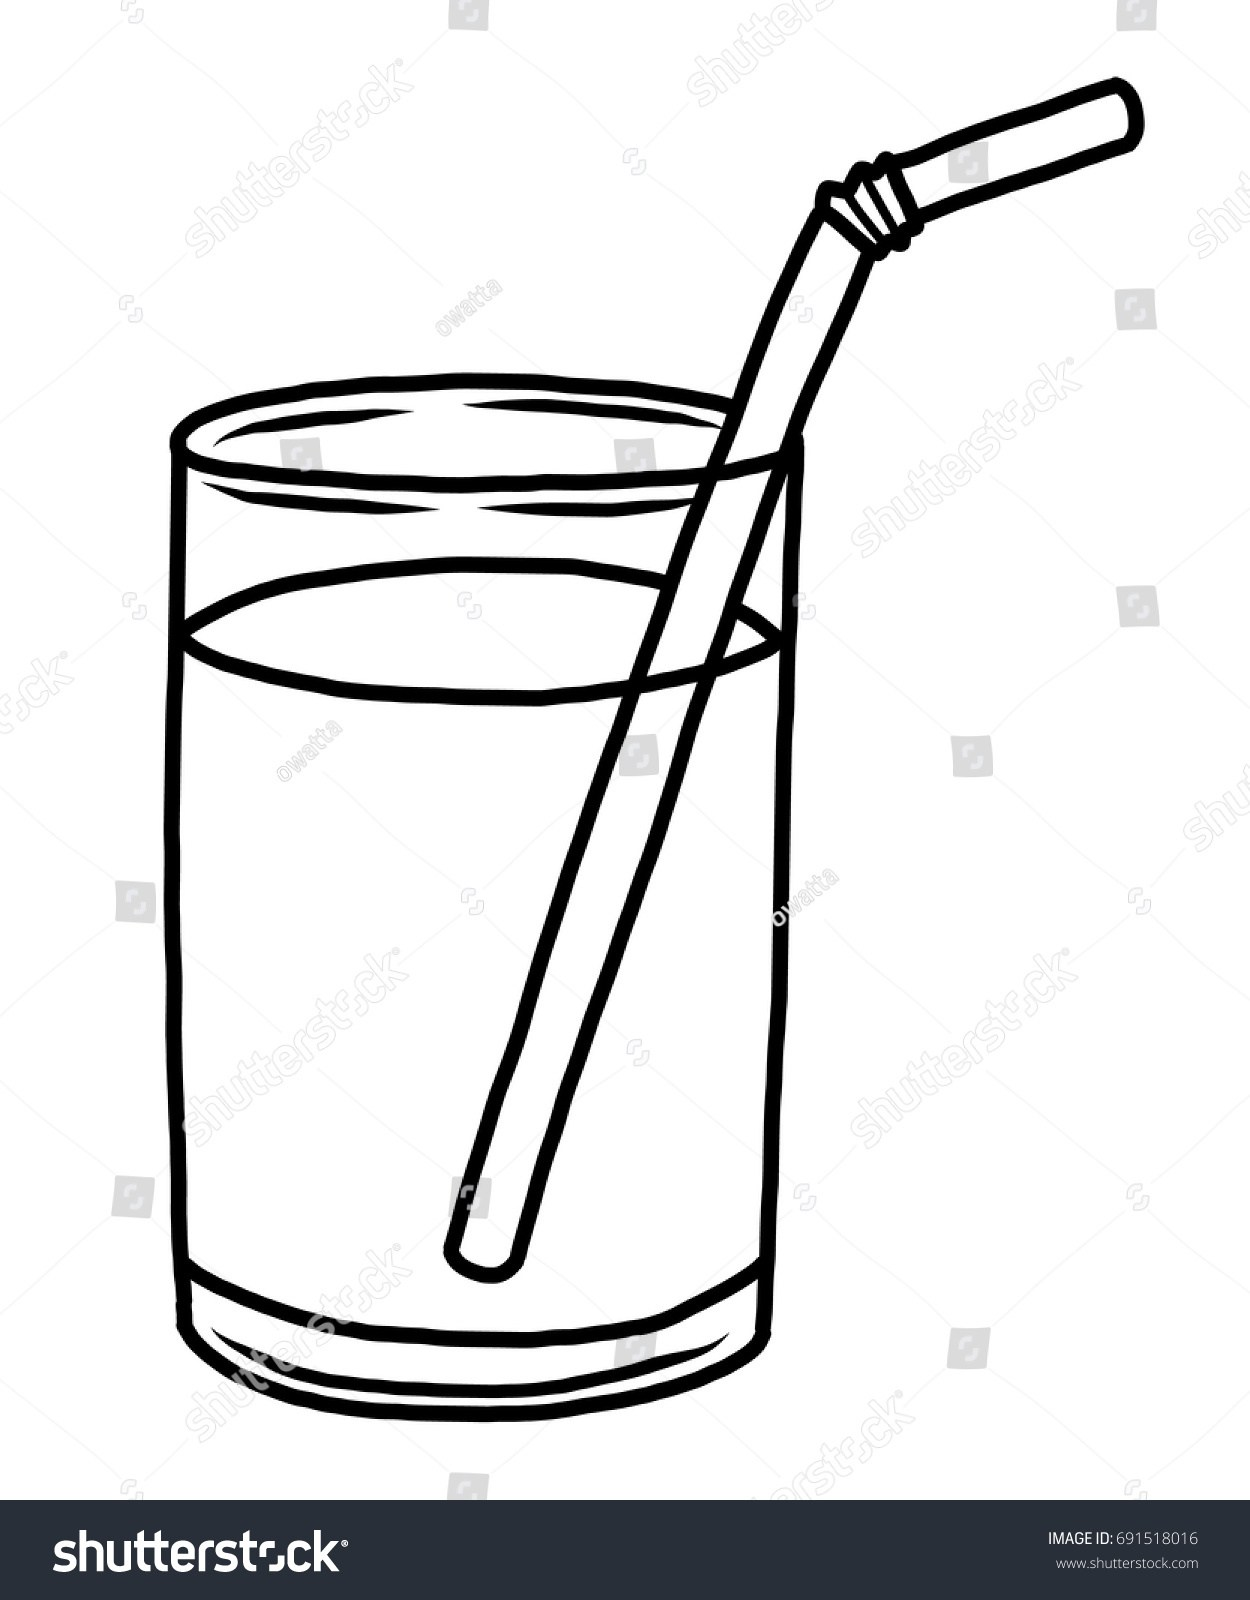 Glass of water black and white clipart clip freeuse stock Water in a glass clipart black and white 6 » Clipart Portal clip freeuse stock